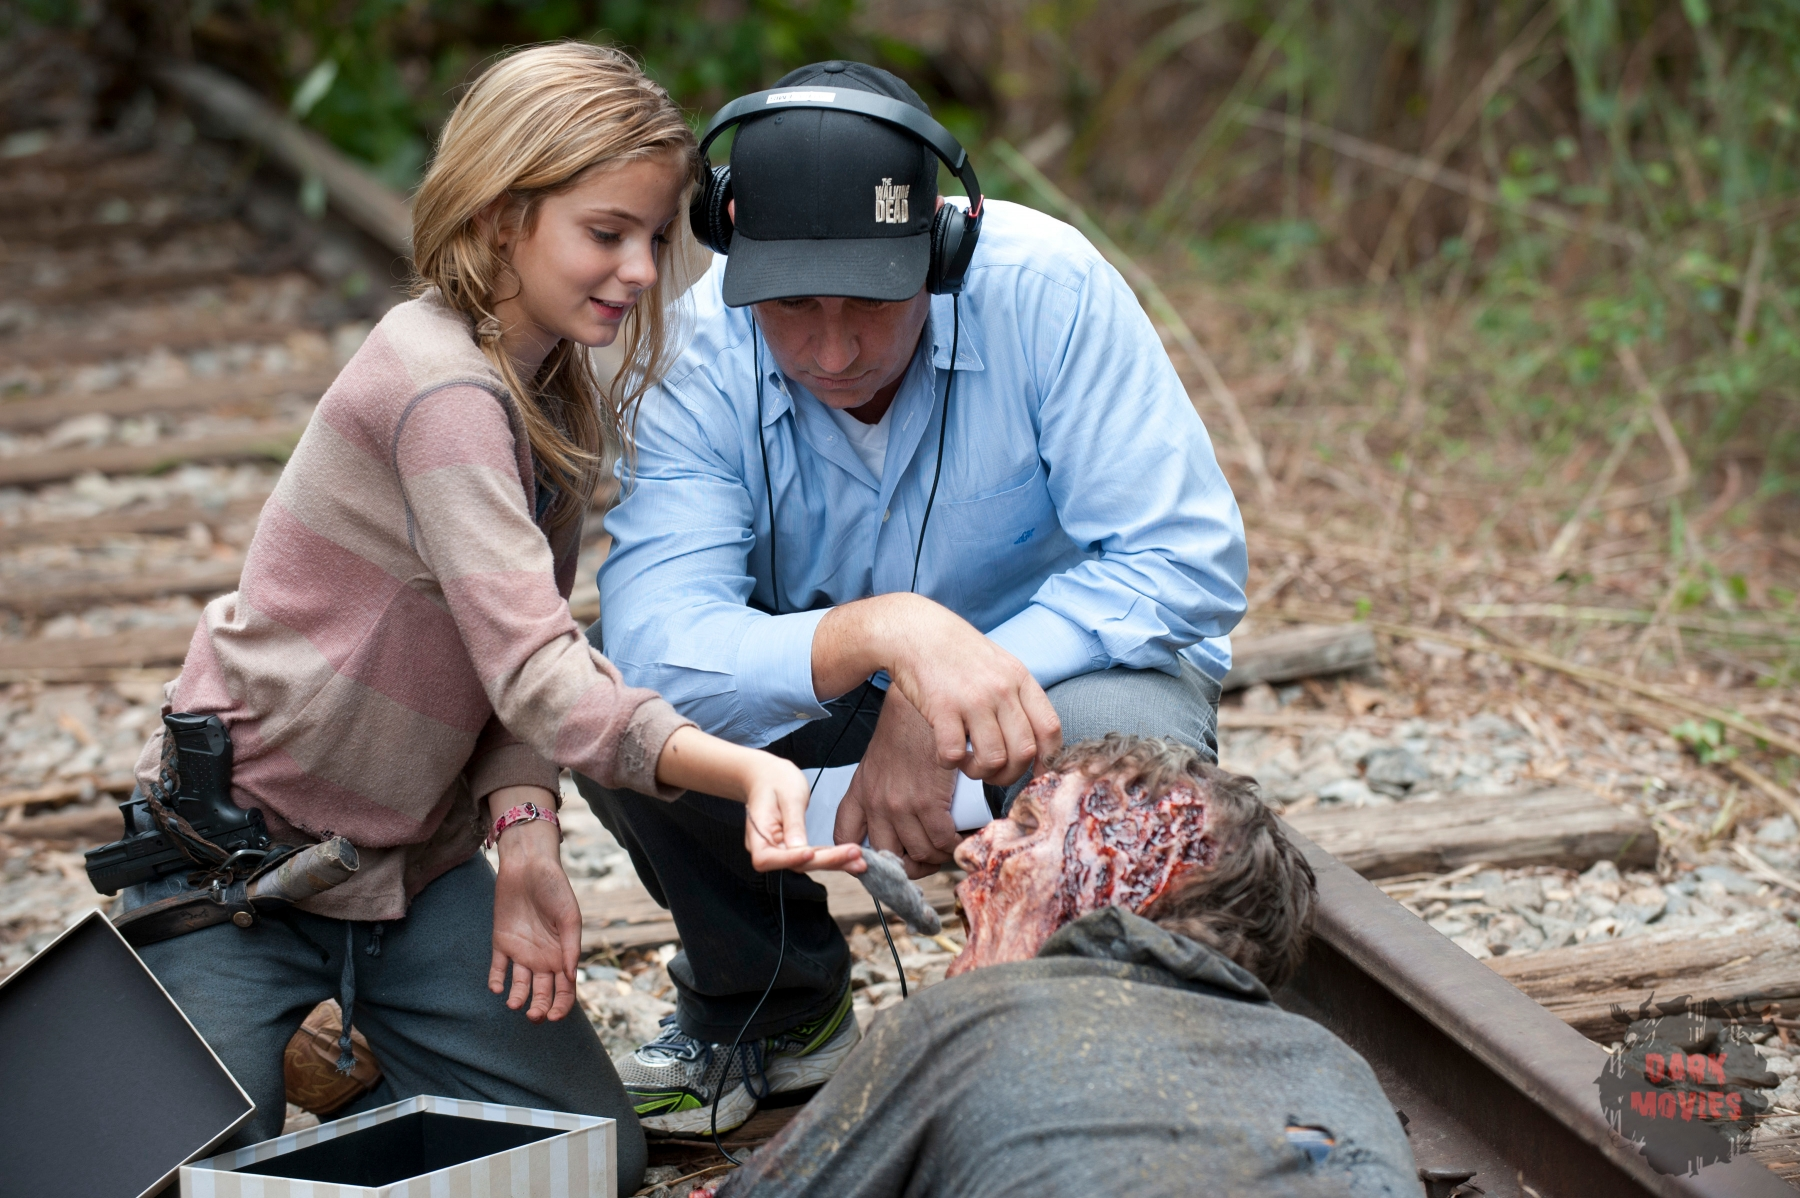 Brighton Sharbino and Walker - The Walking Dead _ Season 4, Episode 14 _ BTS - Photo Credit: Gene Page/AMC